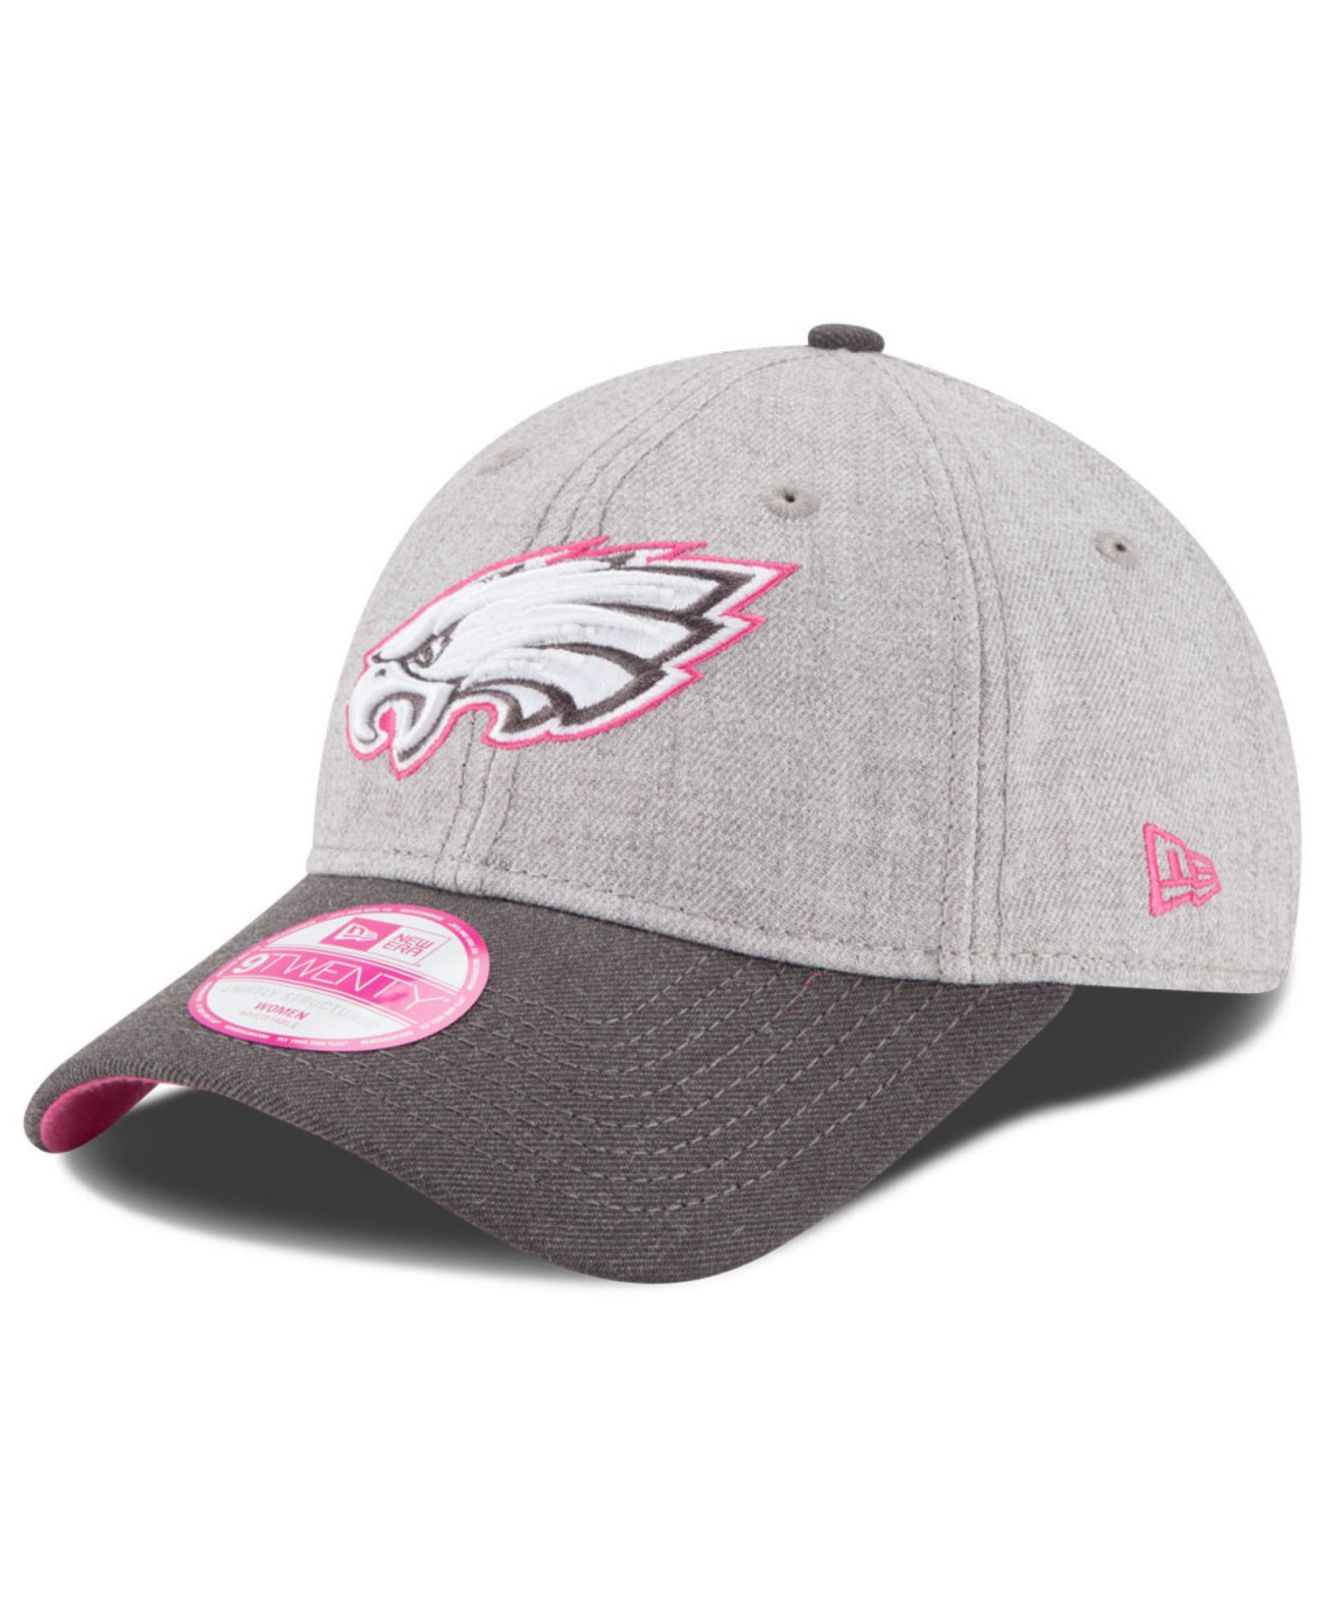 bf934c29 cheapest pink philadelphia eagles hat 7b921 0943e